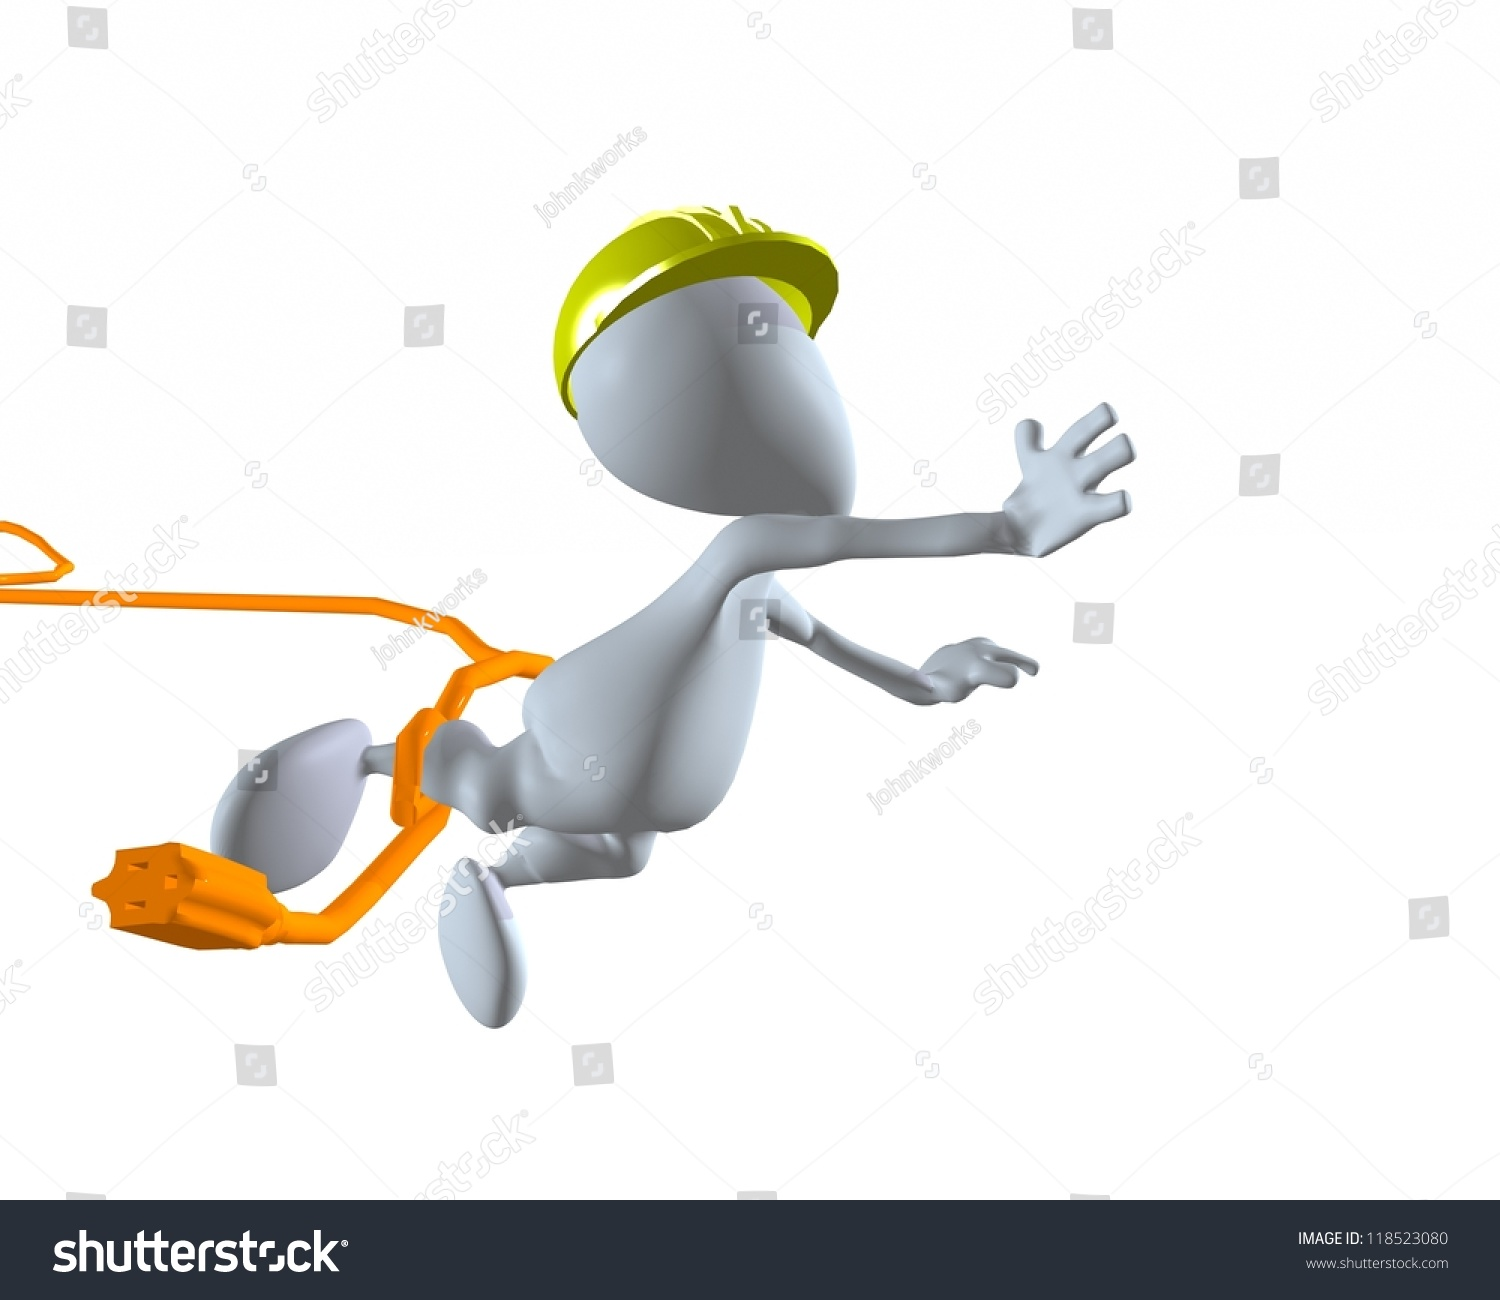 Extension Cord Trip Hazard : D man construction worker tripping on stock illustration